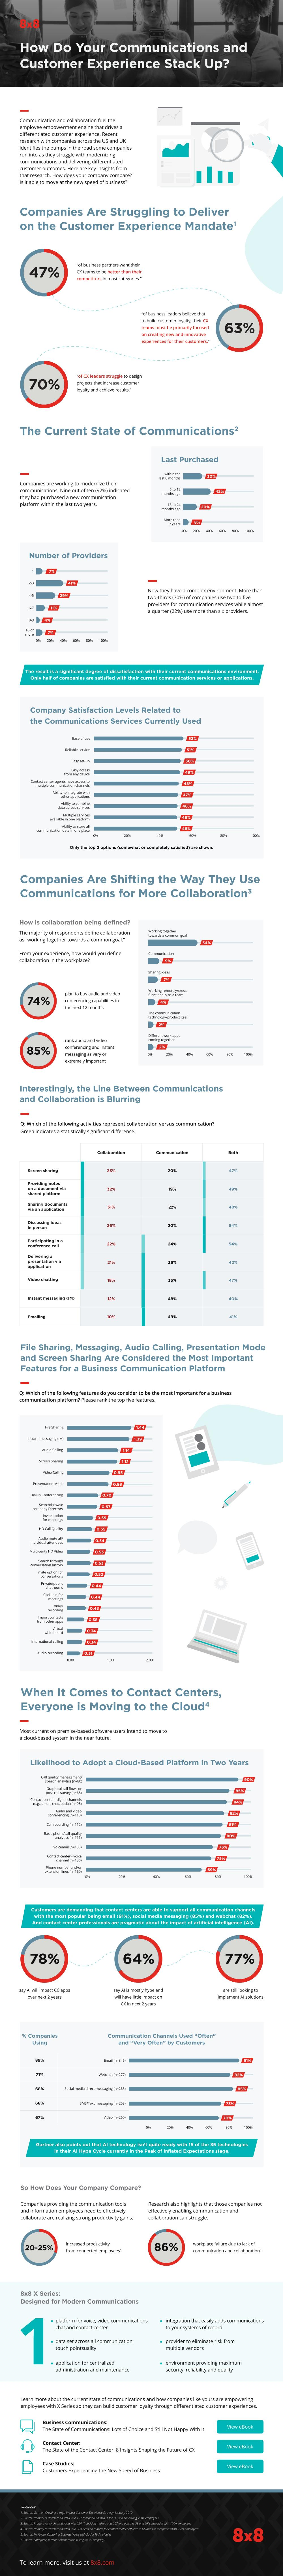 State Of Communications Infographic